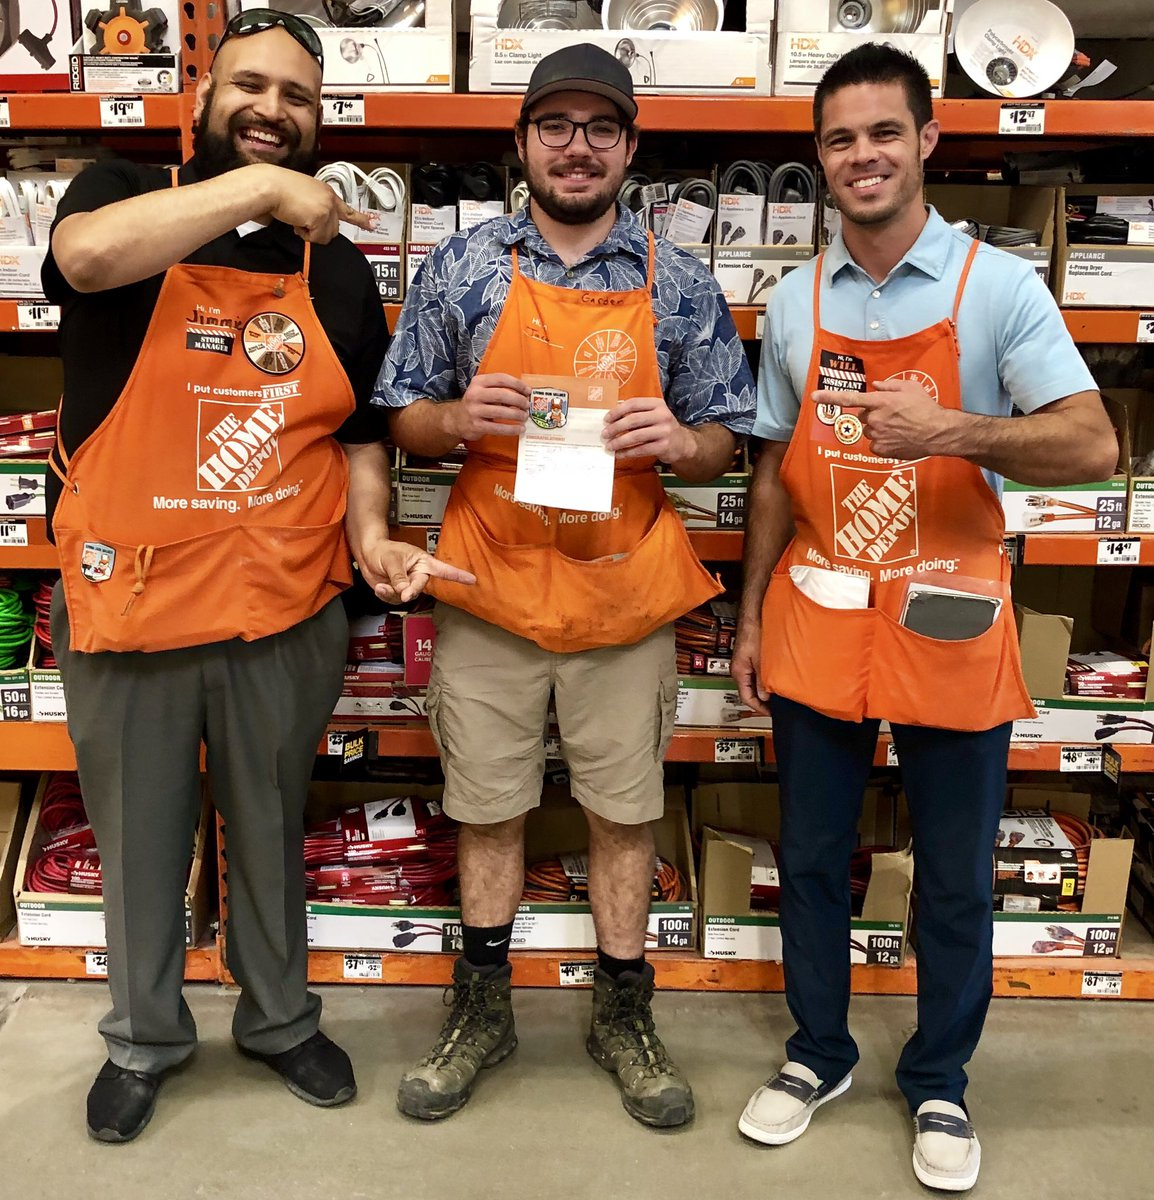 🚨🚨NEW BADGE ALERT 🚨🚨 Jacob driving excellent customer service through in stock and store appearance! Keep it up and thanks for all you do Jacob!!! #BadgerUp #SWBest #SIT